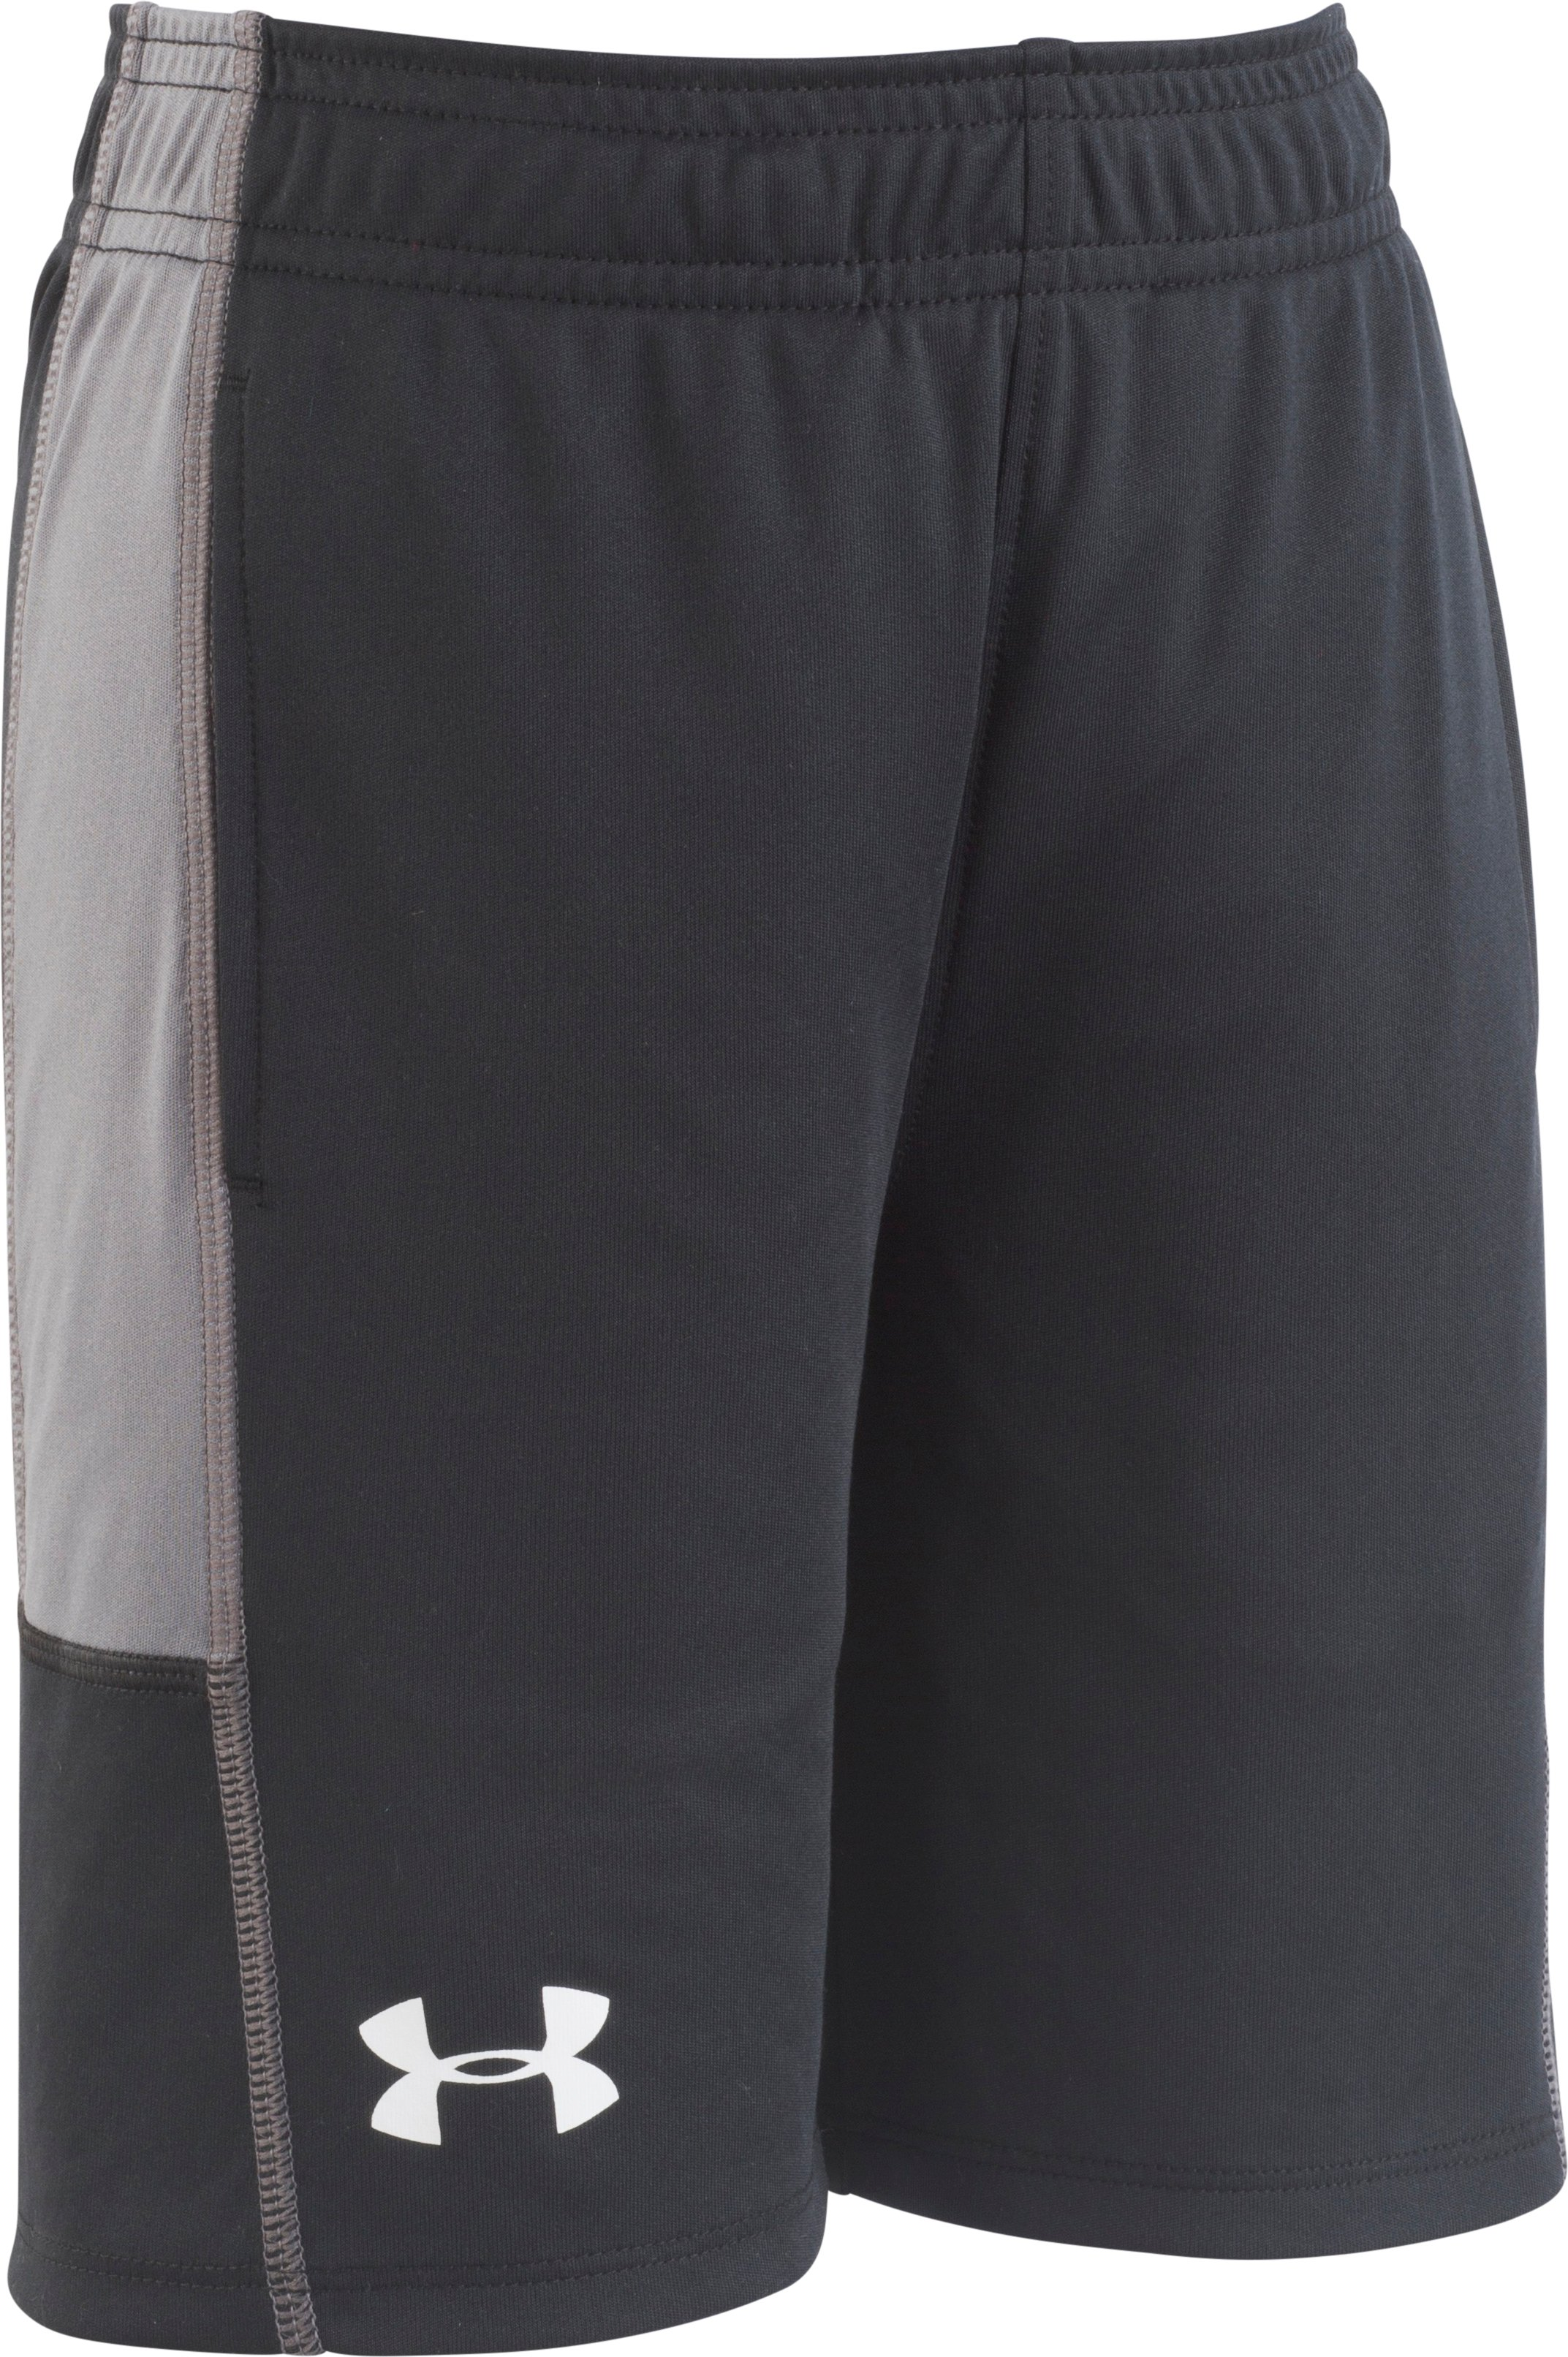 Boys' Toddler UA Stunt Shorts 6 Colors $24.99